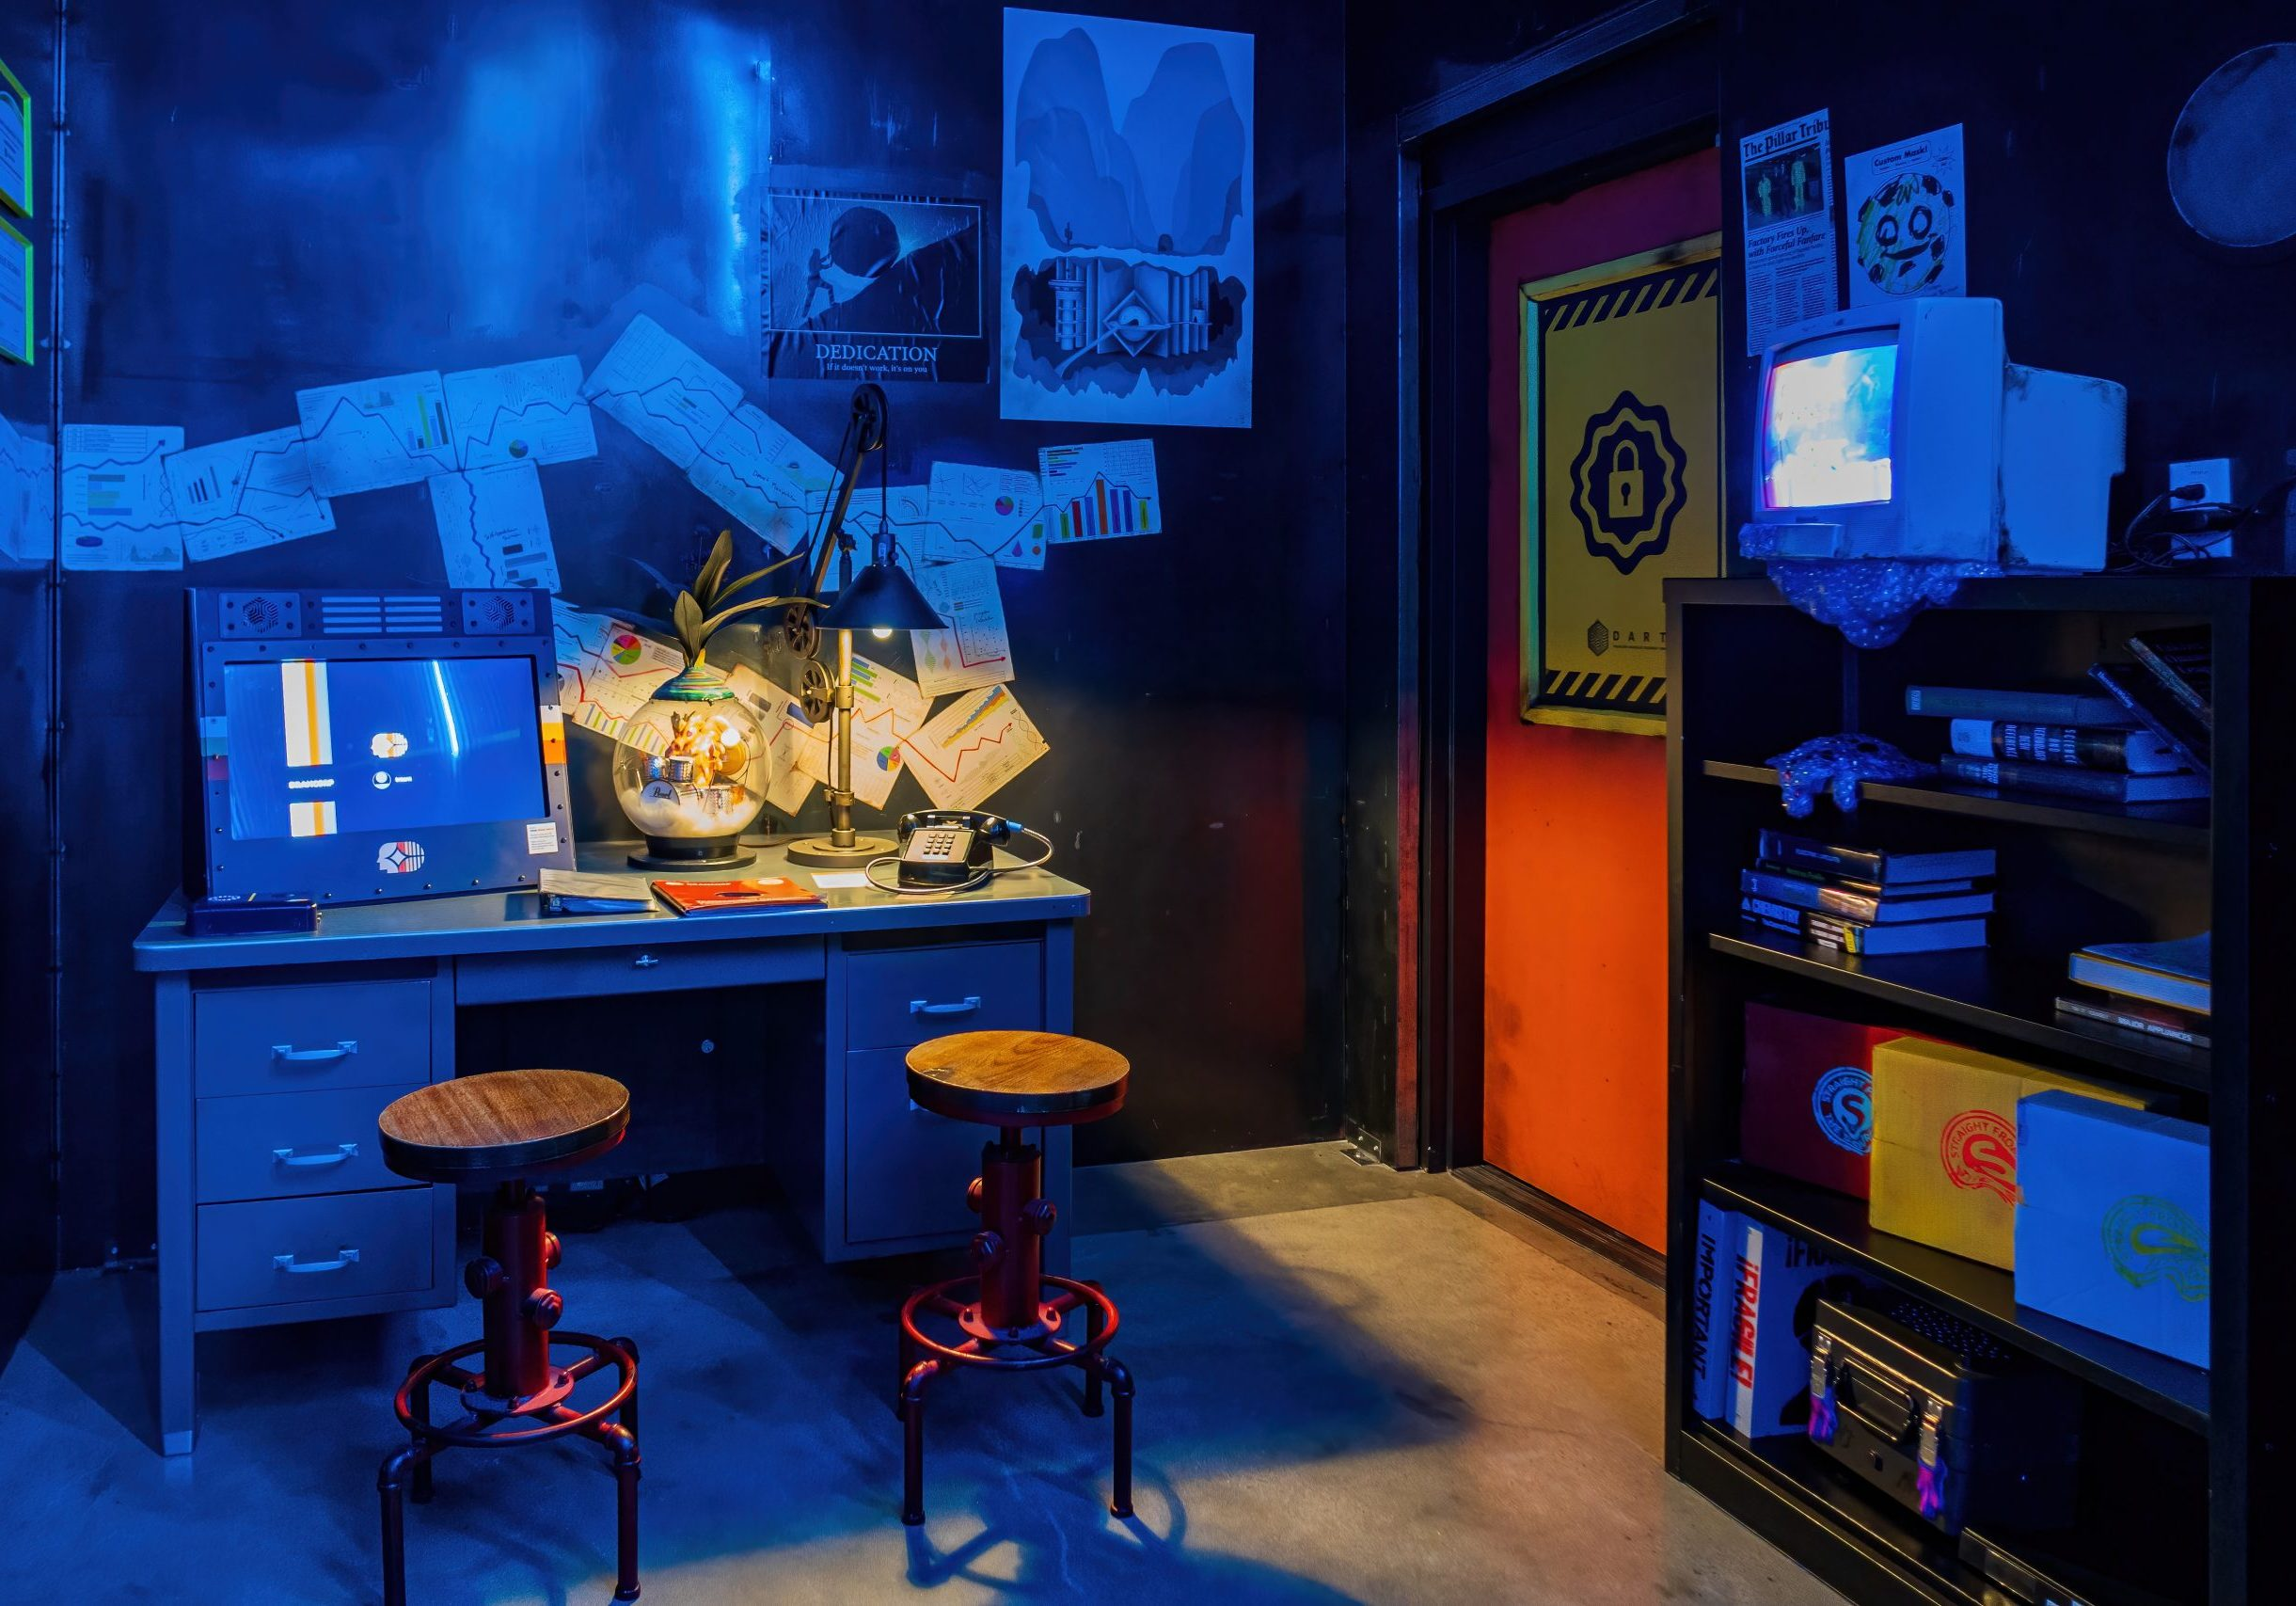 Photograph of an escape room puzzle room